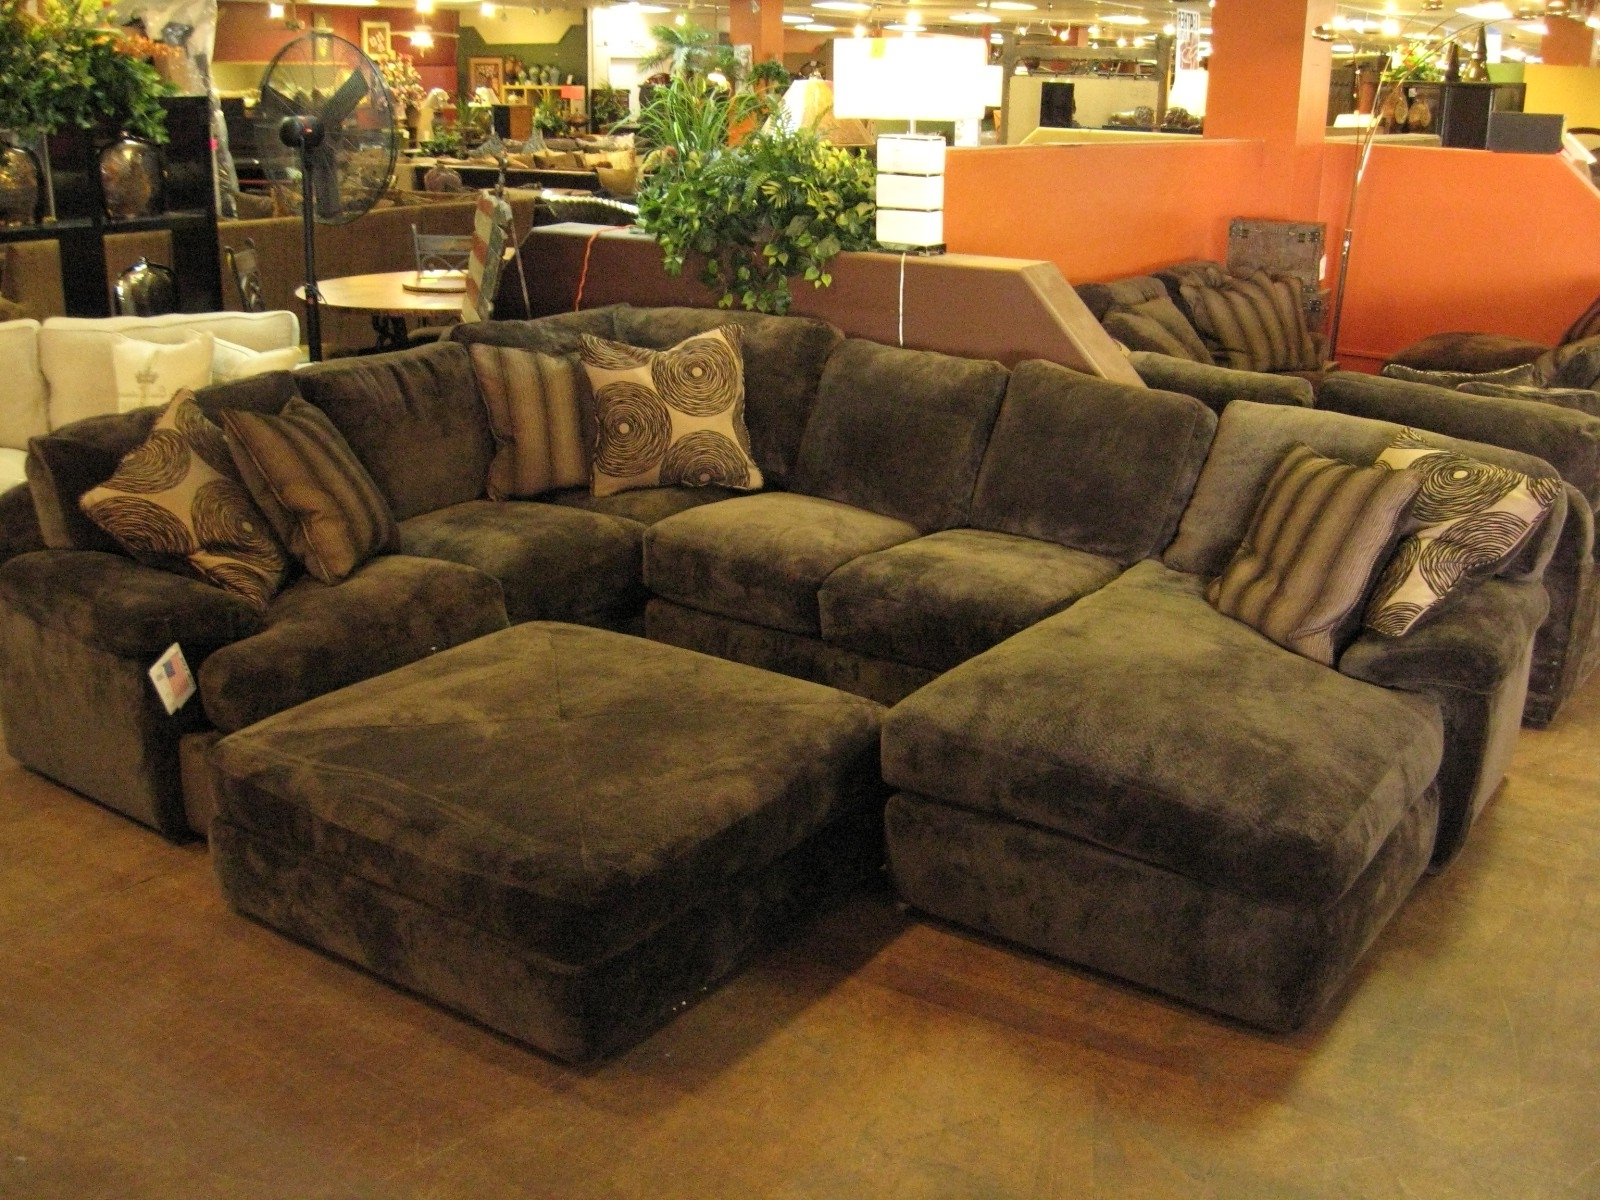 Red Fabric Sectional Sofa And Ottoman Steal A Furniture Inside In 2017 Sectionals With Ottoman And Chaise (View 6 of 15)